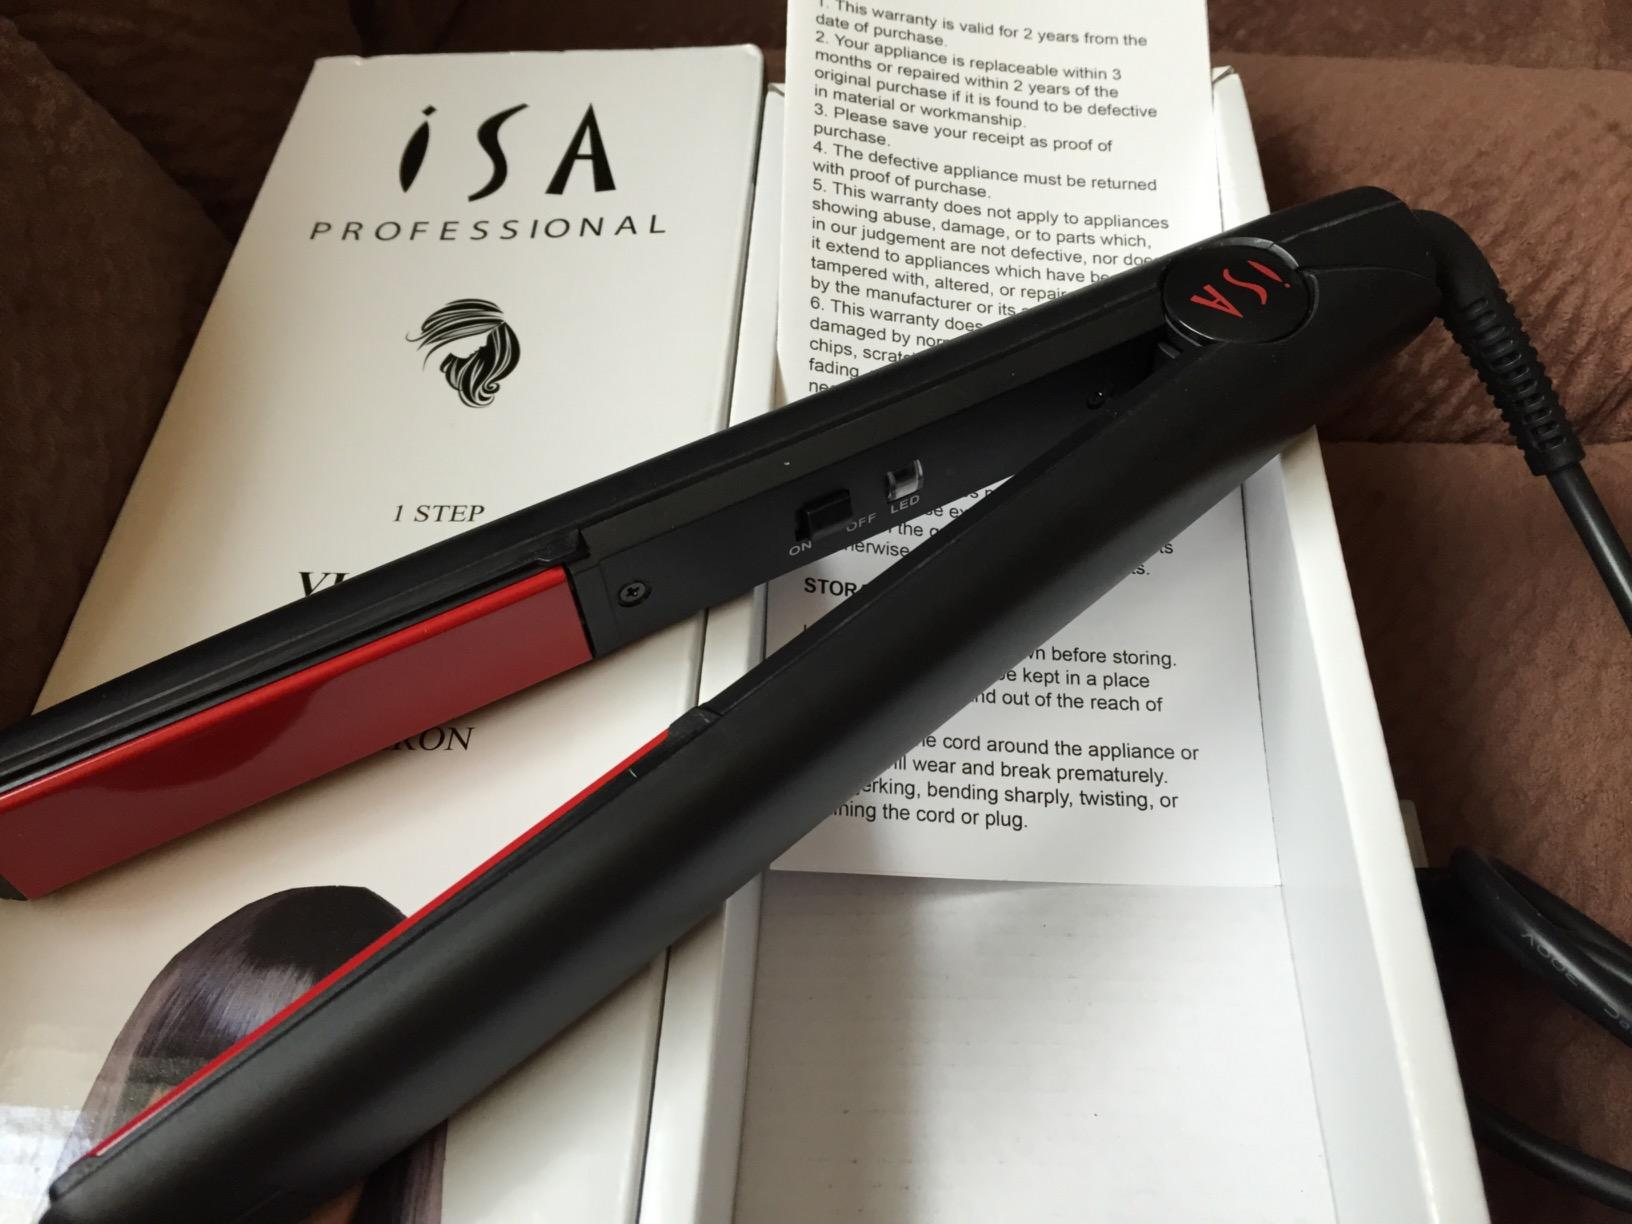 Isa Professional Victoria Flat Iron Hair Straightener